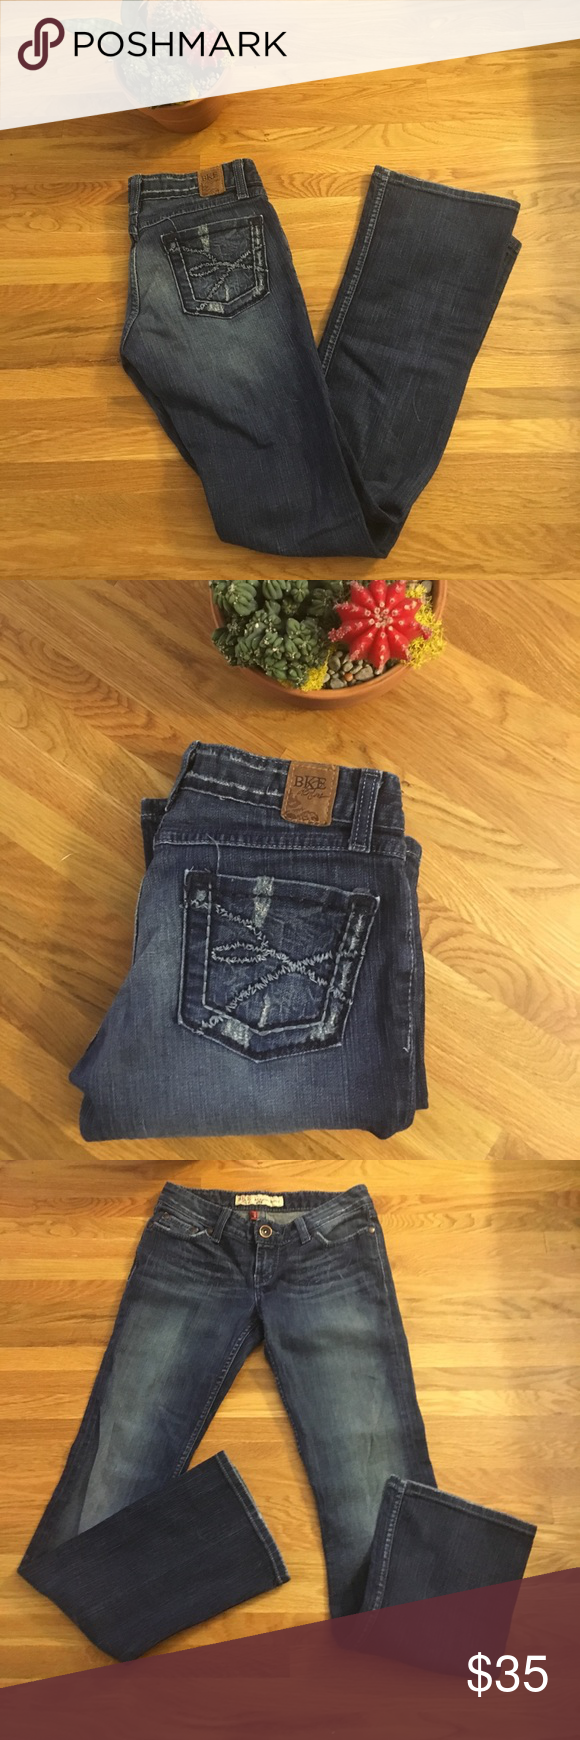 "BKE Jeans Sabrina Bootcut EUC Sz 26 Excellent used condition! Some wear at seat and hems but overall really great shape. I especially love the unique, textured embossed pockets. Waist 14"" across. Inseam 31.75"".  Leg opening 8.25"".  Front rise 7 3/8 inches. Back rise 10.5"". BKE Jeans"